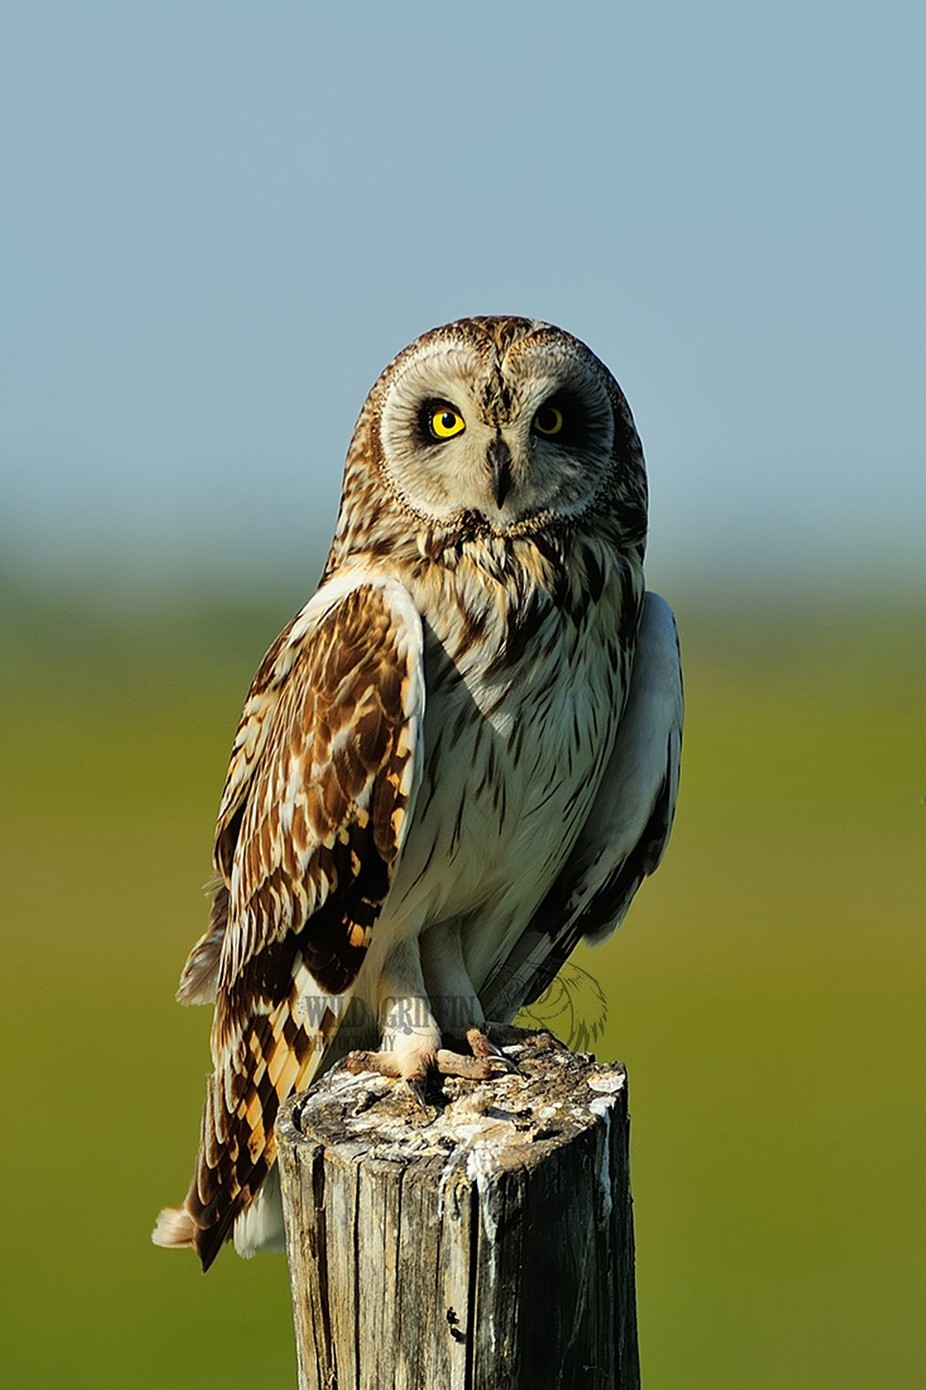 Short Eared Owl by alangriffin - Beautiful Owls Photo Contest